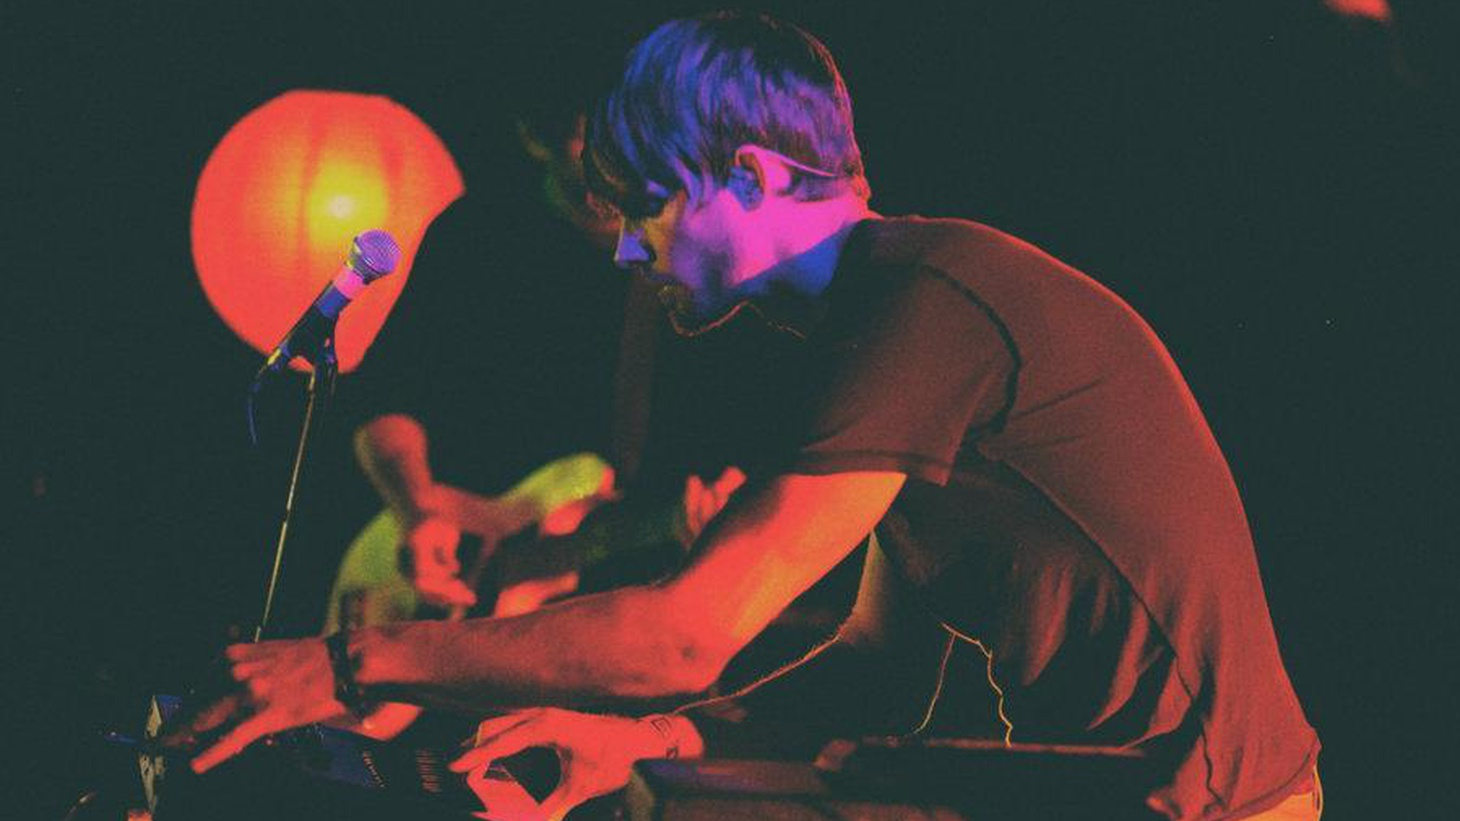 Graphic designer Scott Hansen, also known as Tycho, found his musical identity creating the sonic equivalent of the images he favors in his visual art work.